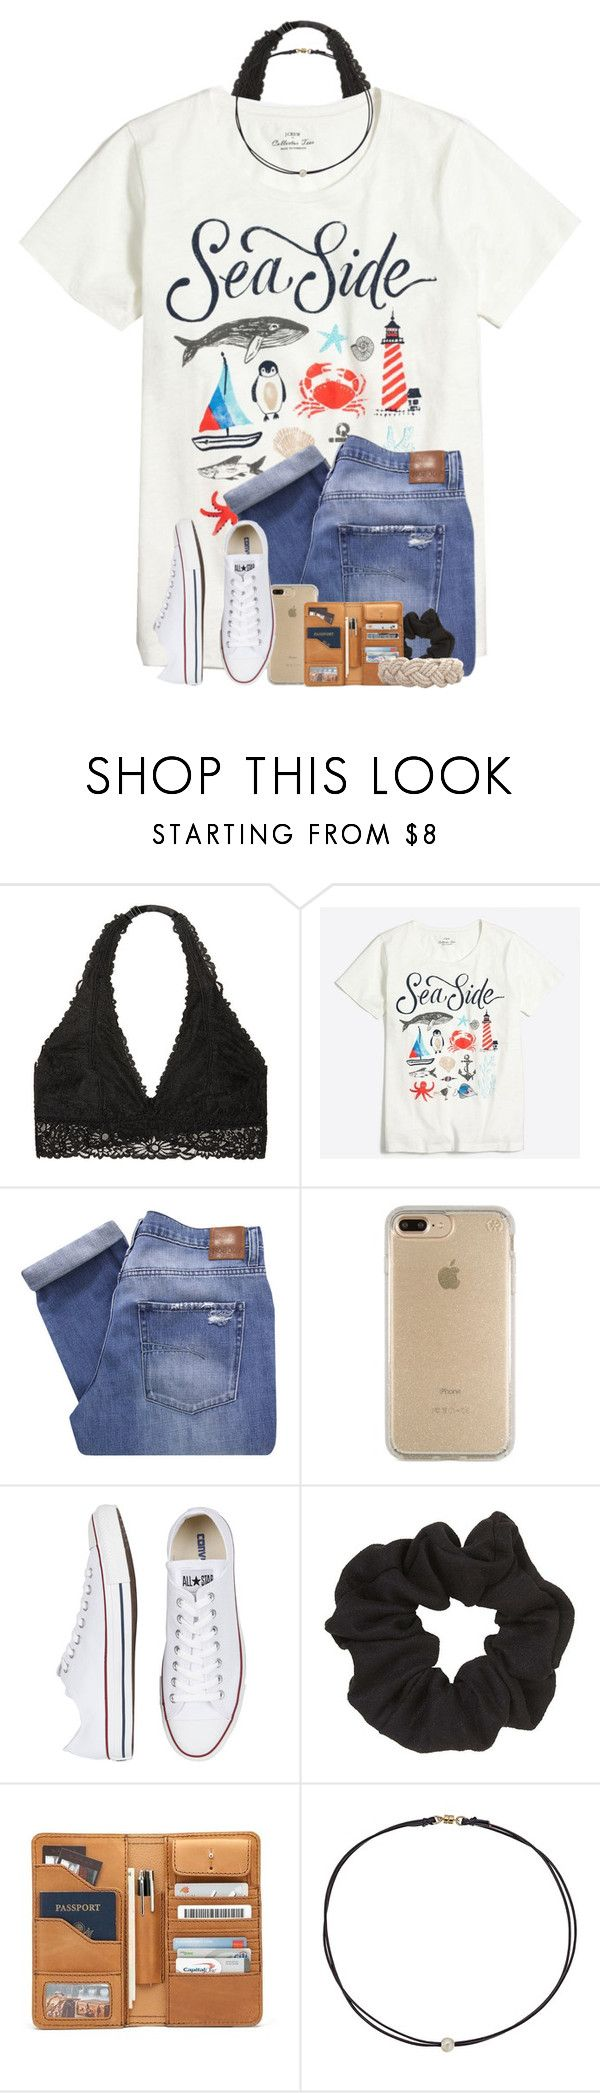 """QOTD: What's the last song you listened to?"" by jeh-shev ❤ liked on Polyvore featuring Victoria's Secret, J.Crew, Nobody Denim, Speck, Converse, Topshop, Dogeared and Swell"